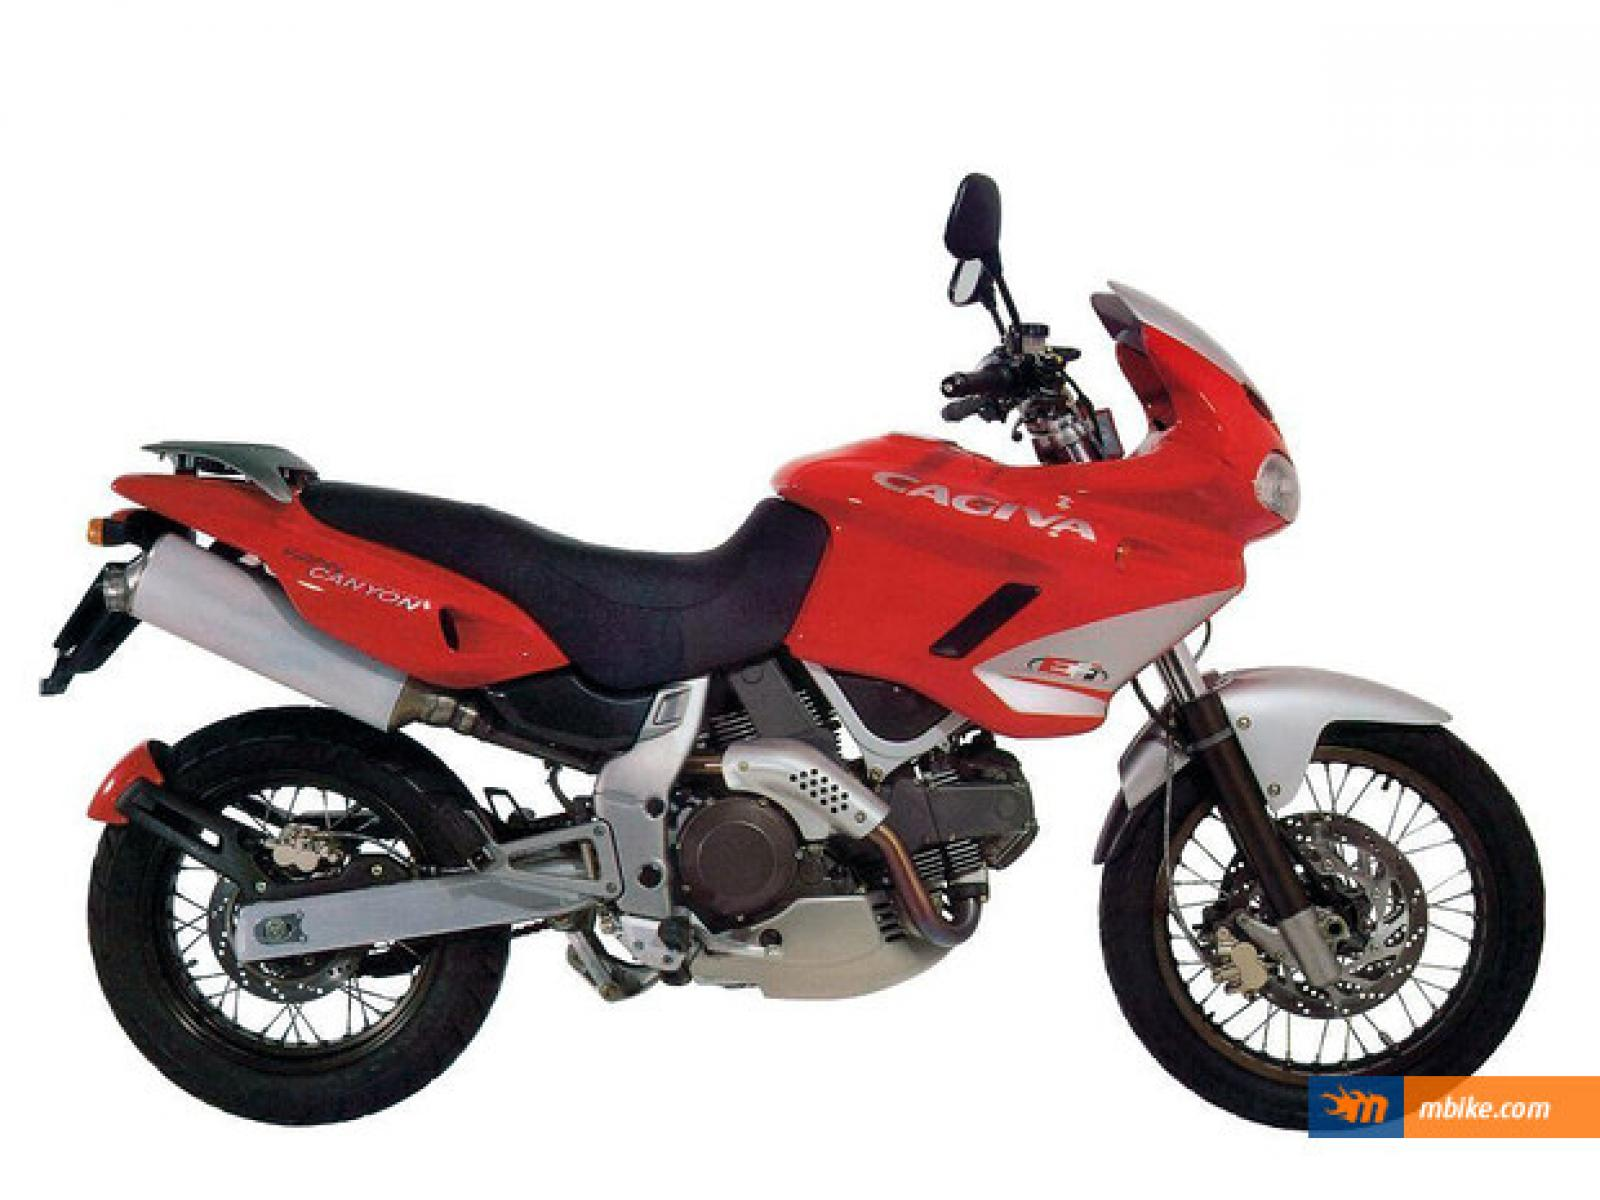 Cagiva Grand Canyon 1997 images #67279